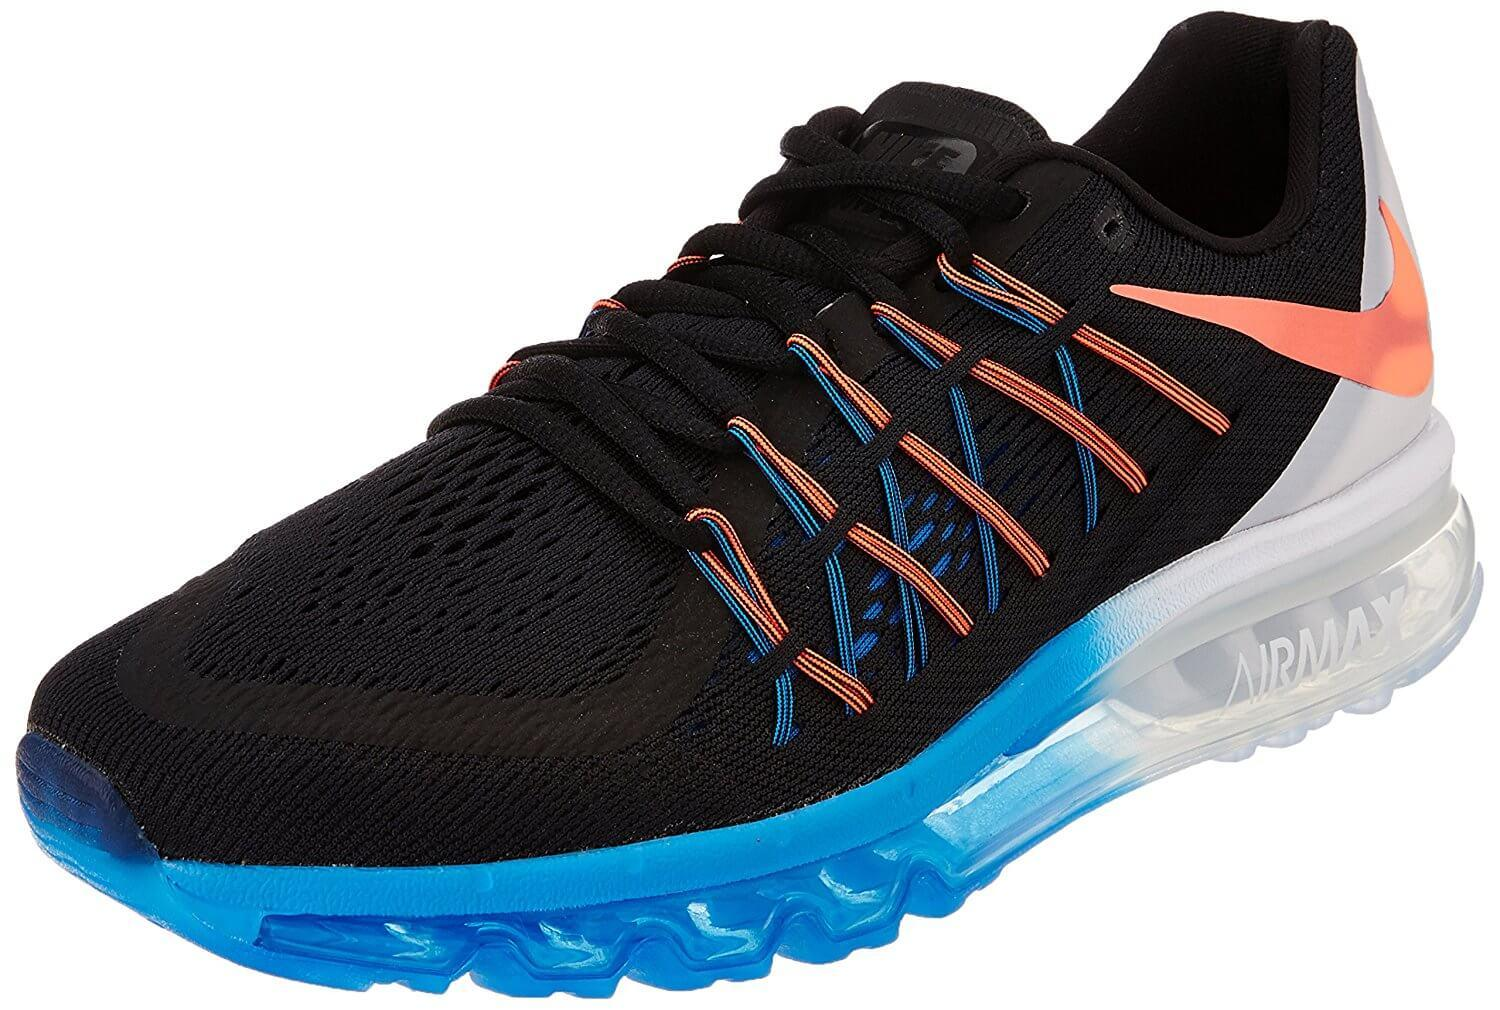 An in depth review of the Nike Air Max 2015